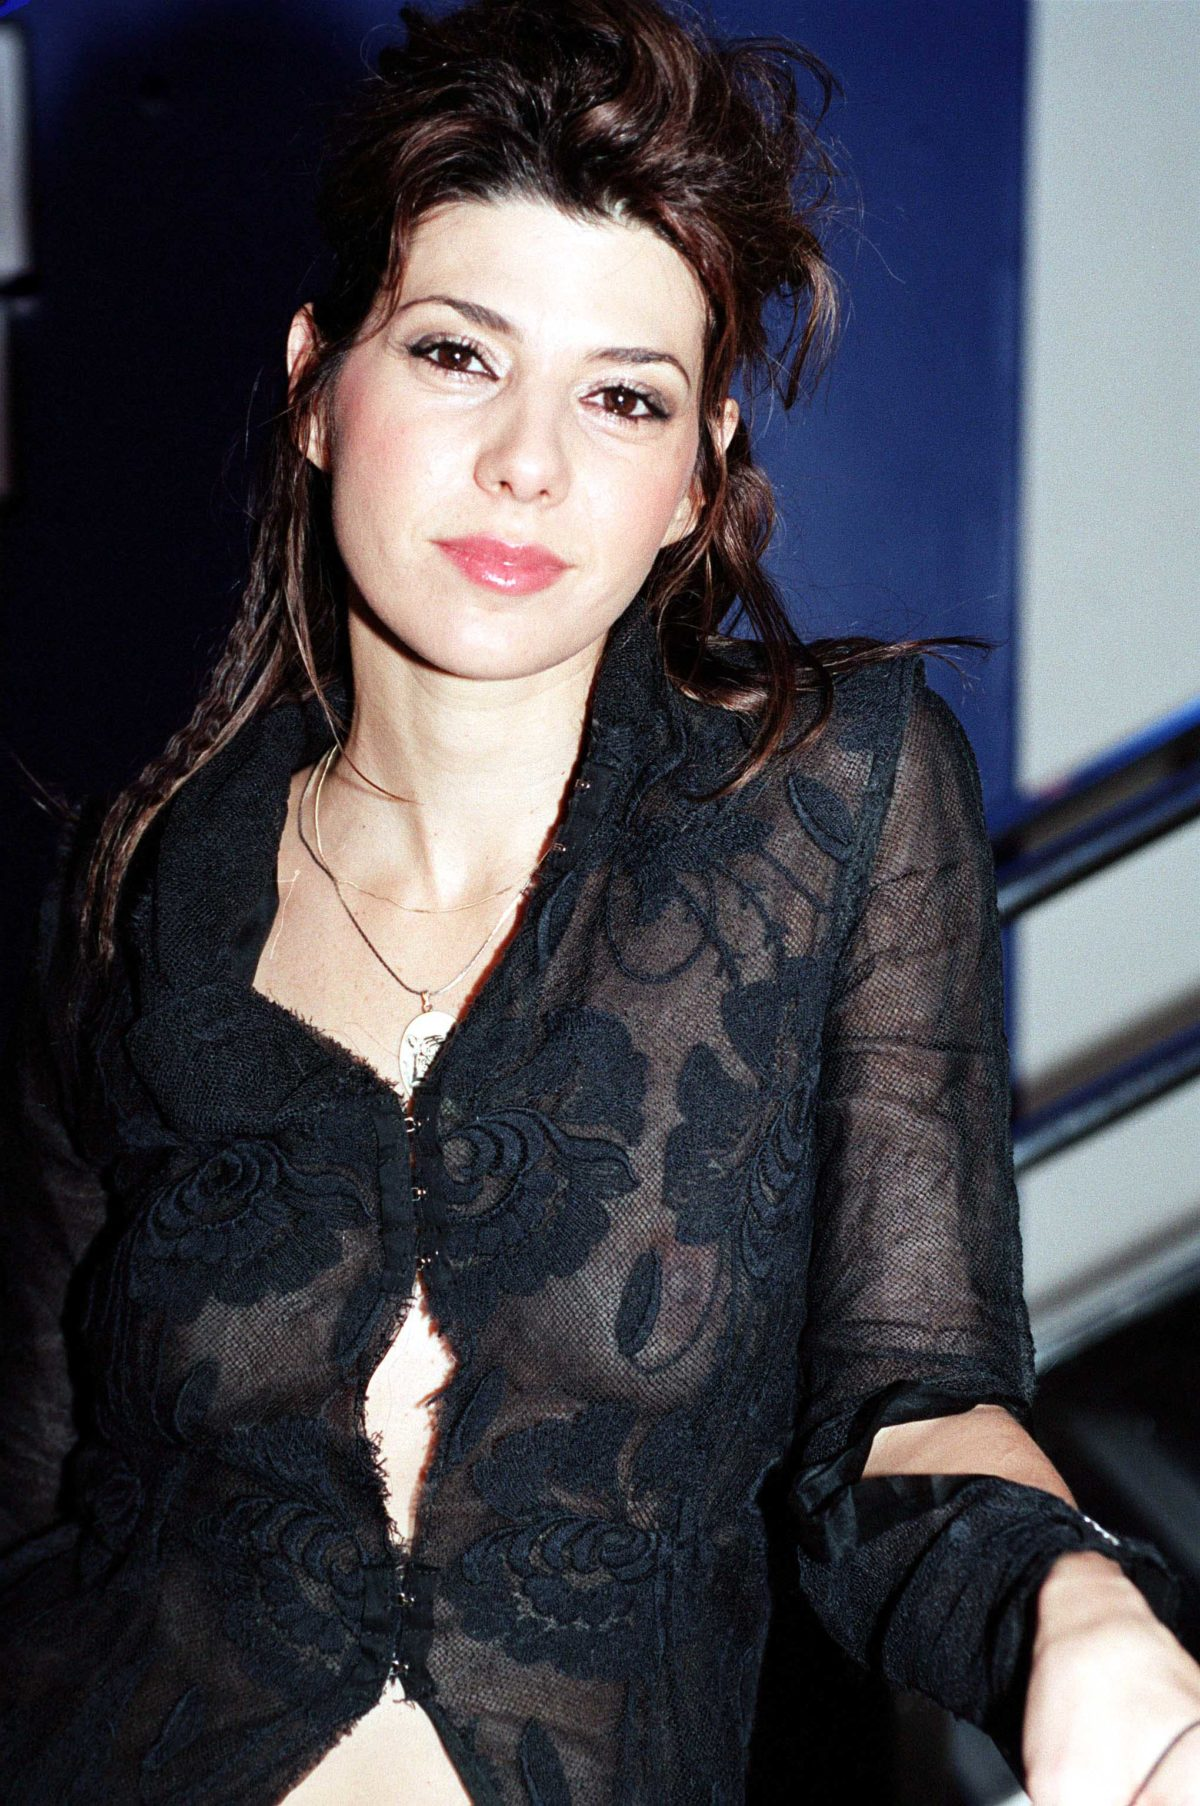 Pictures of Marisa Tomei – Pictures Of Celebrities